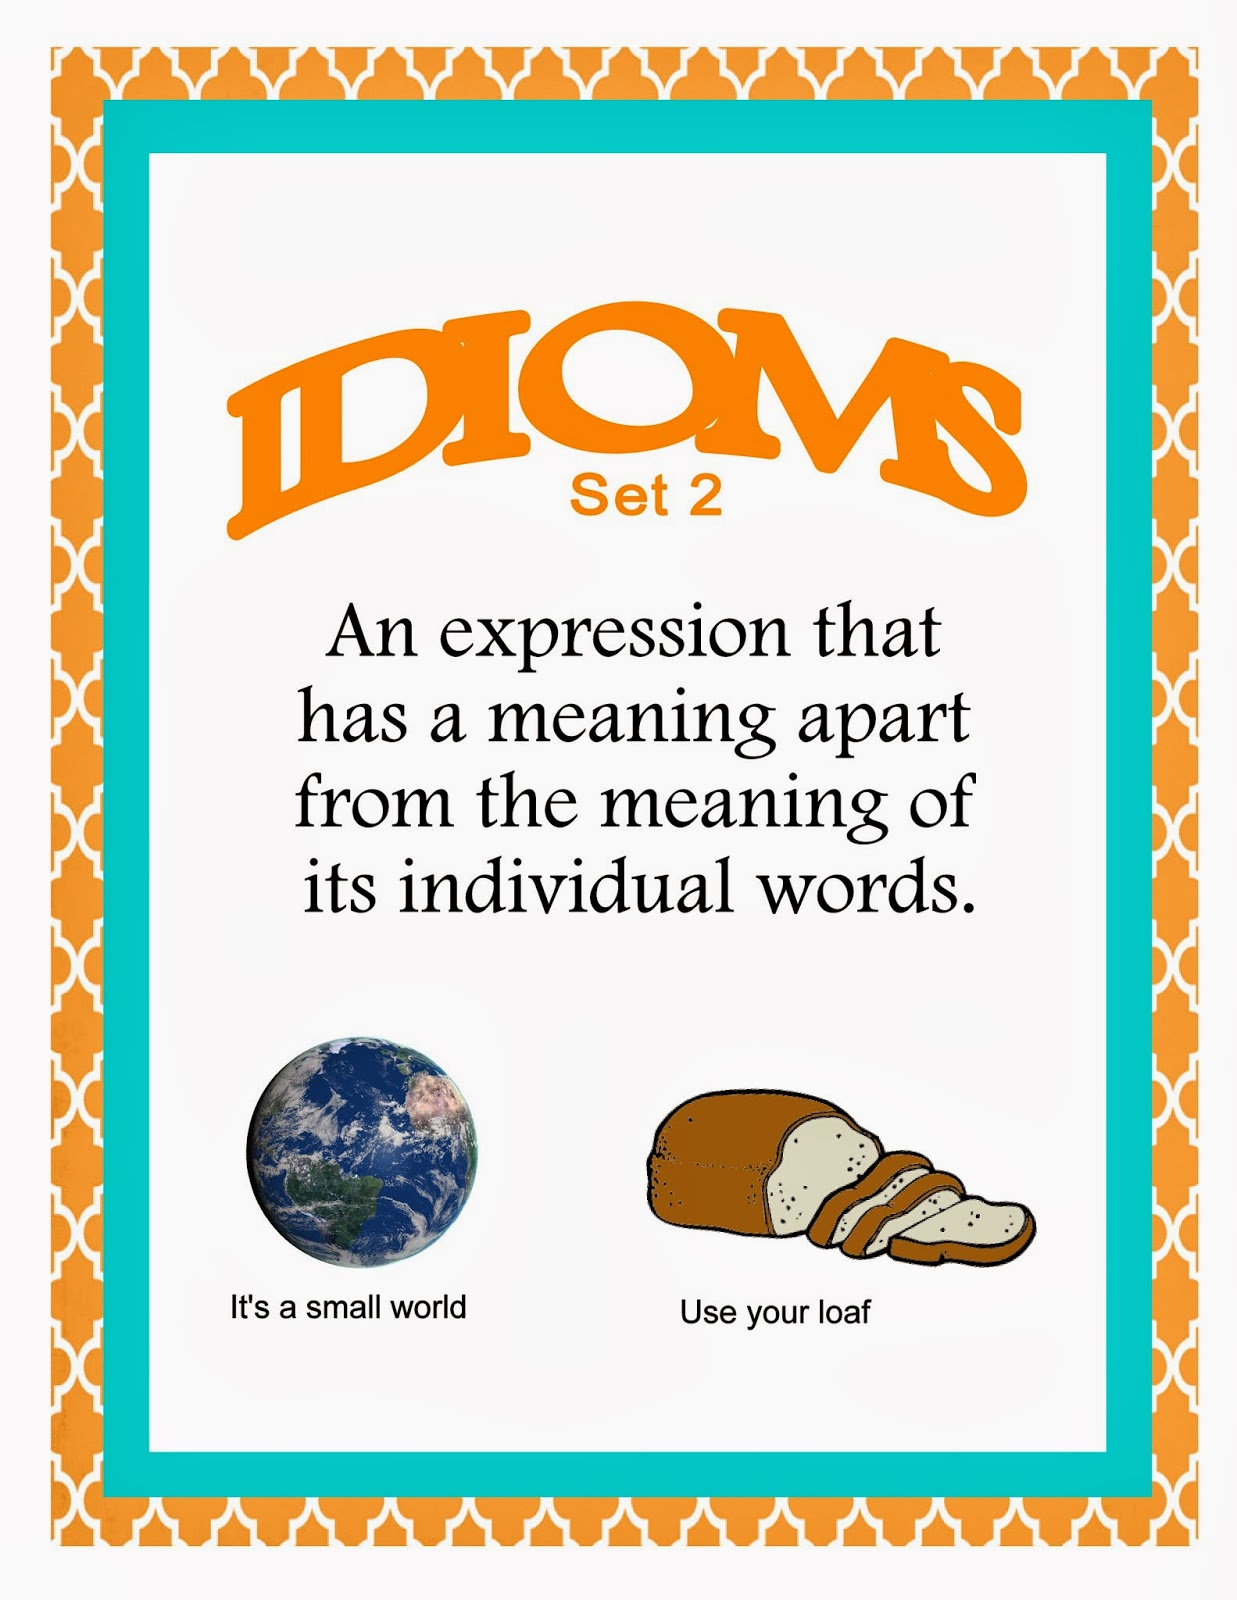 http://www.teacherspayteachers.com/Product/Idioms-2-433951